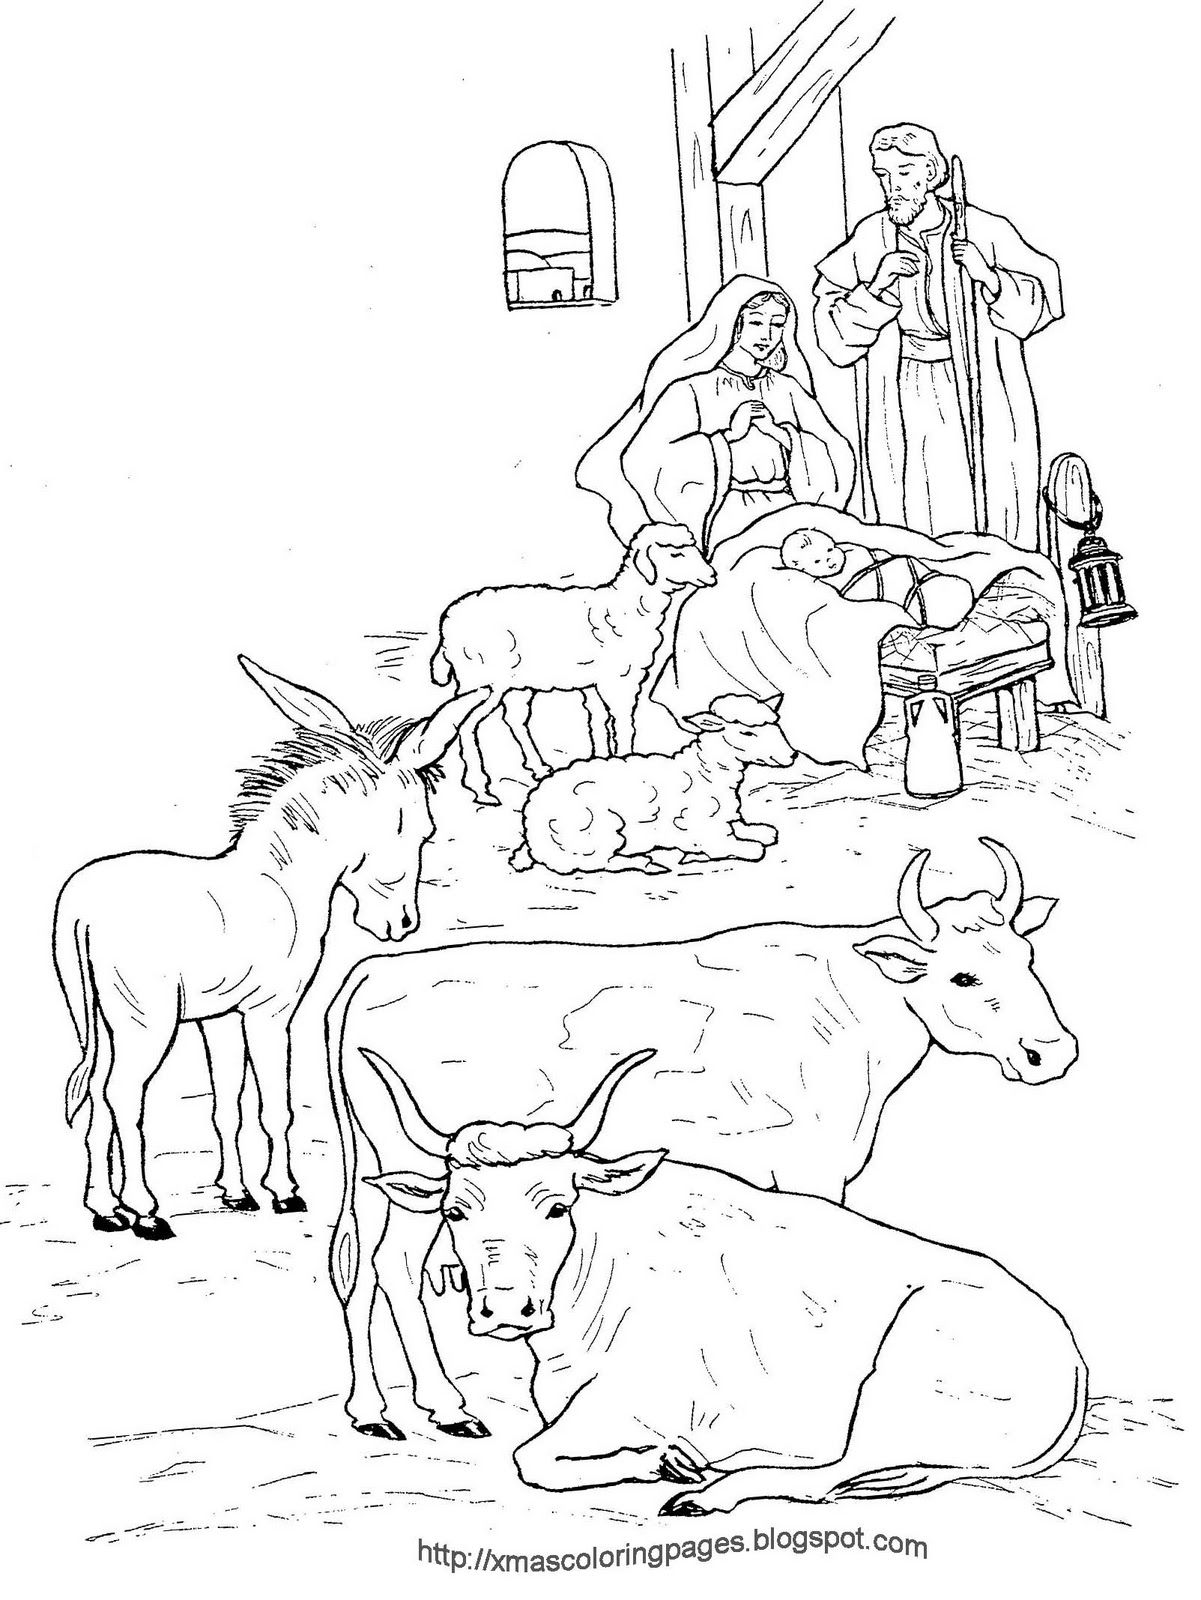 Pin on Christian Coloring books